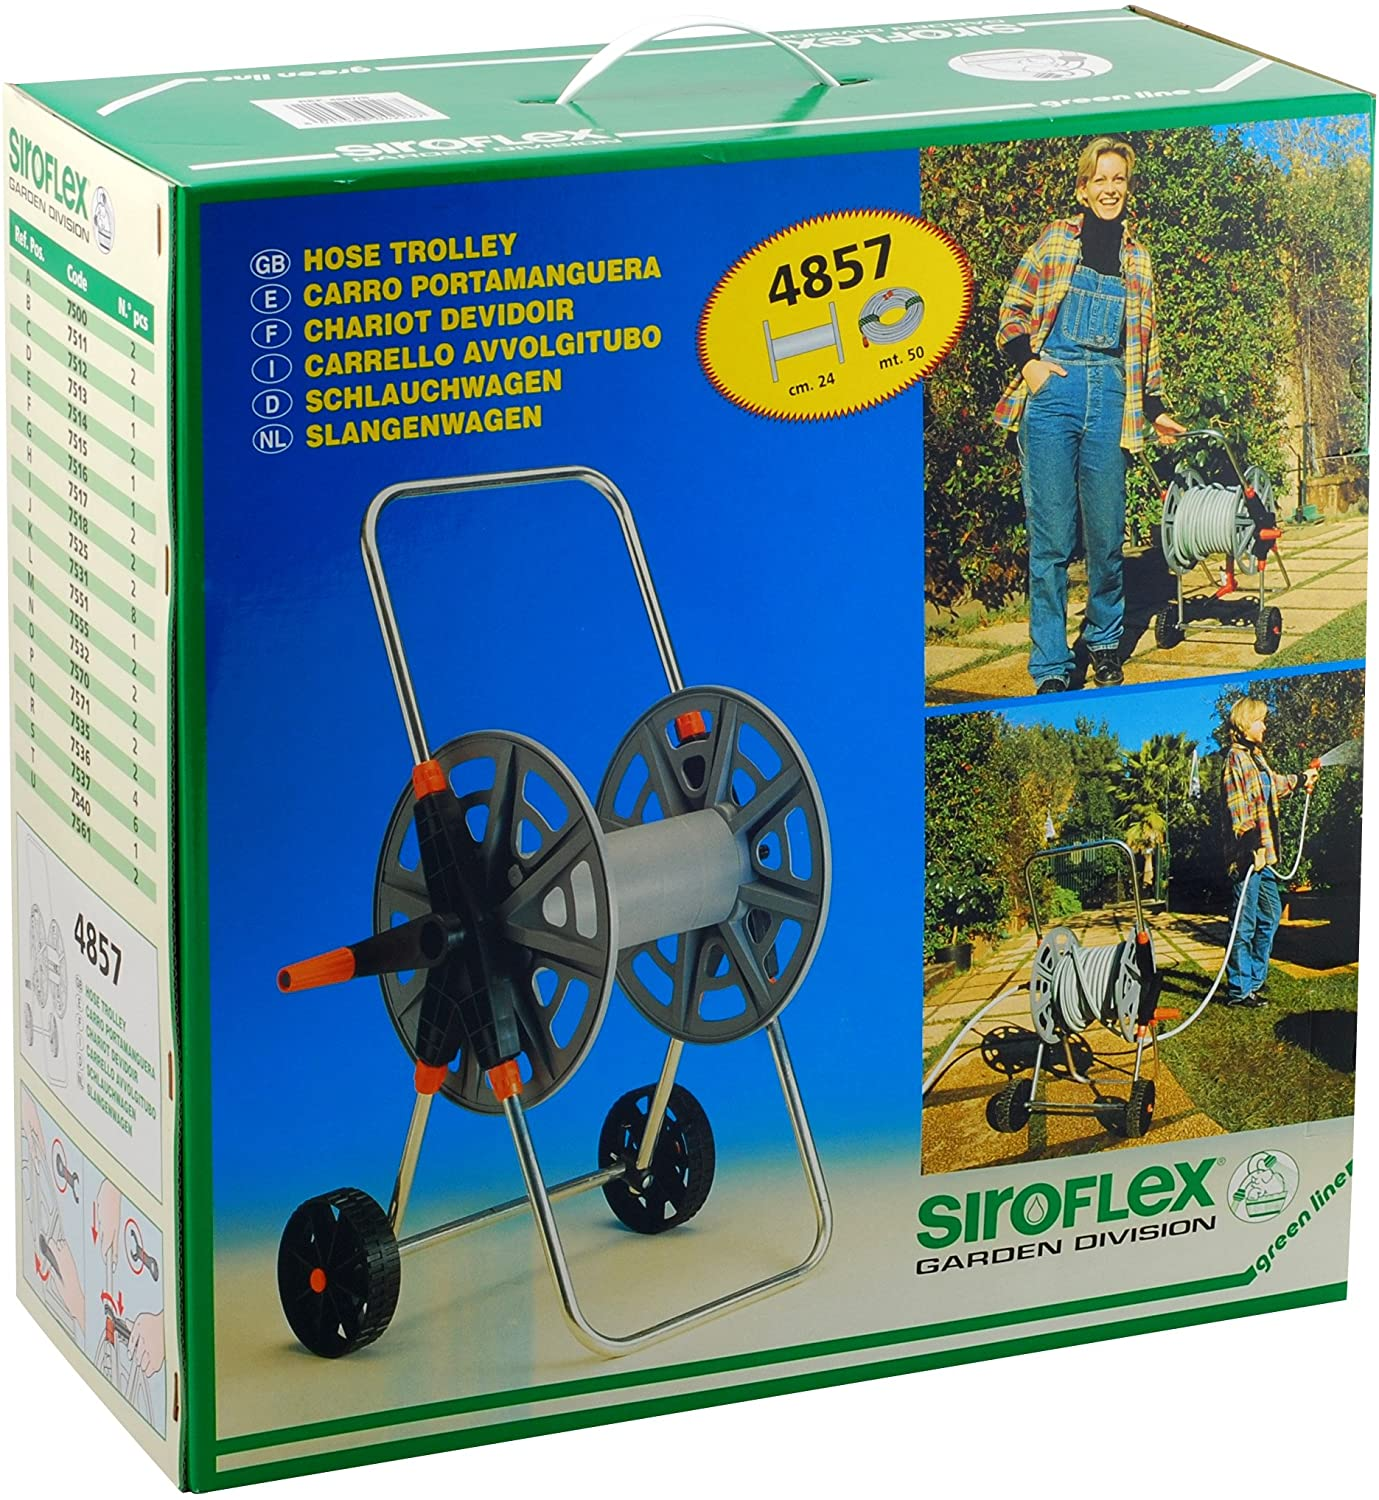 Hose Reel 50m With Wheels 4857 Gardening Accessories Irrigation System